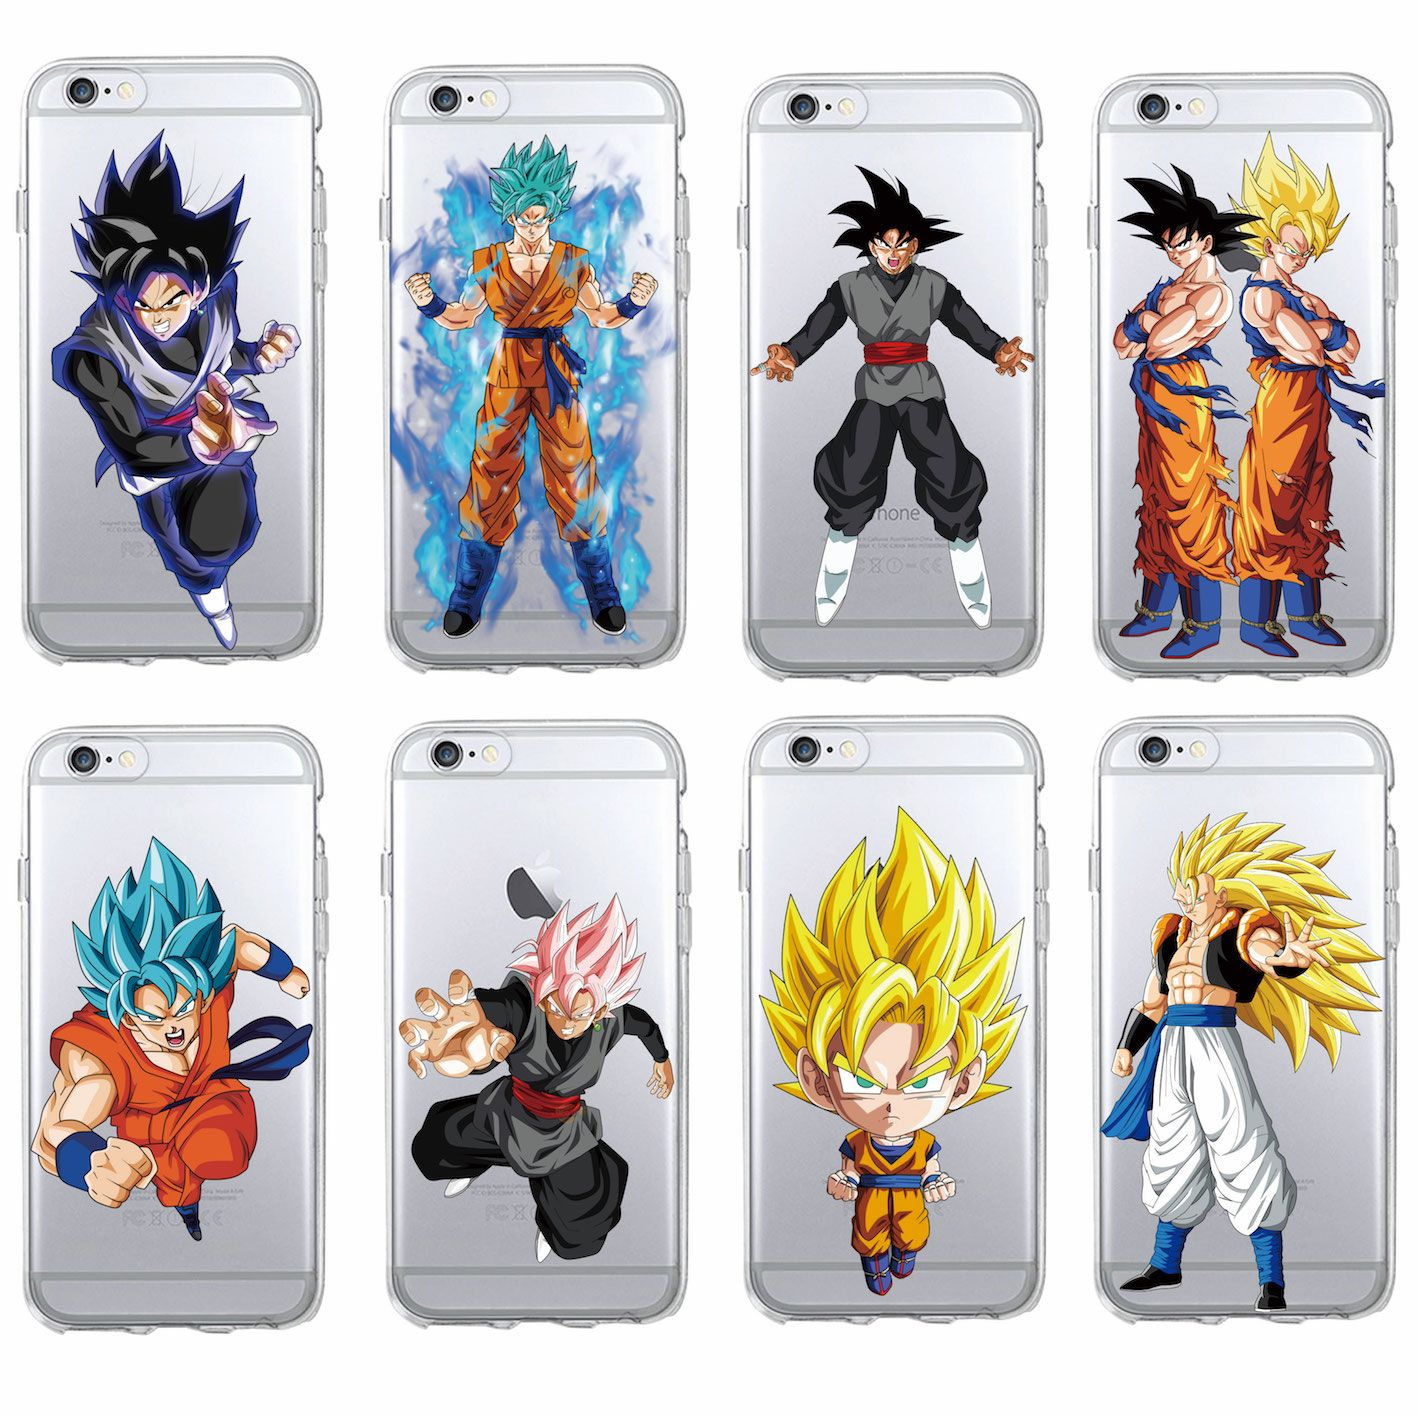 Dragon Ball Z Goku x Chichi 2 iphone case